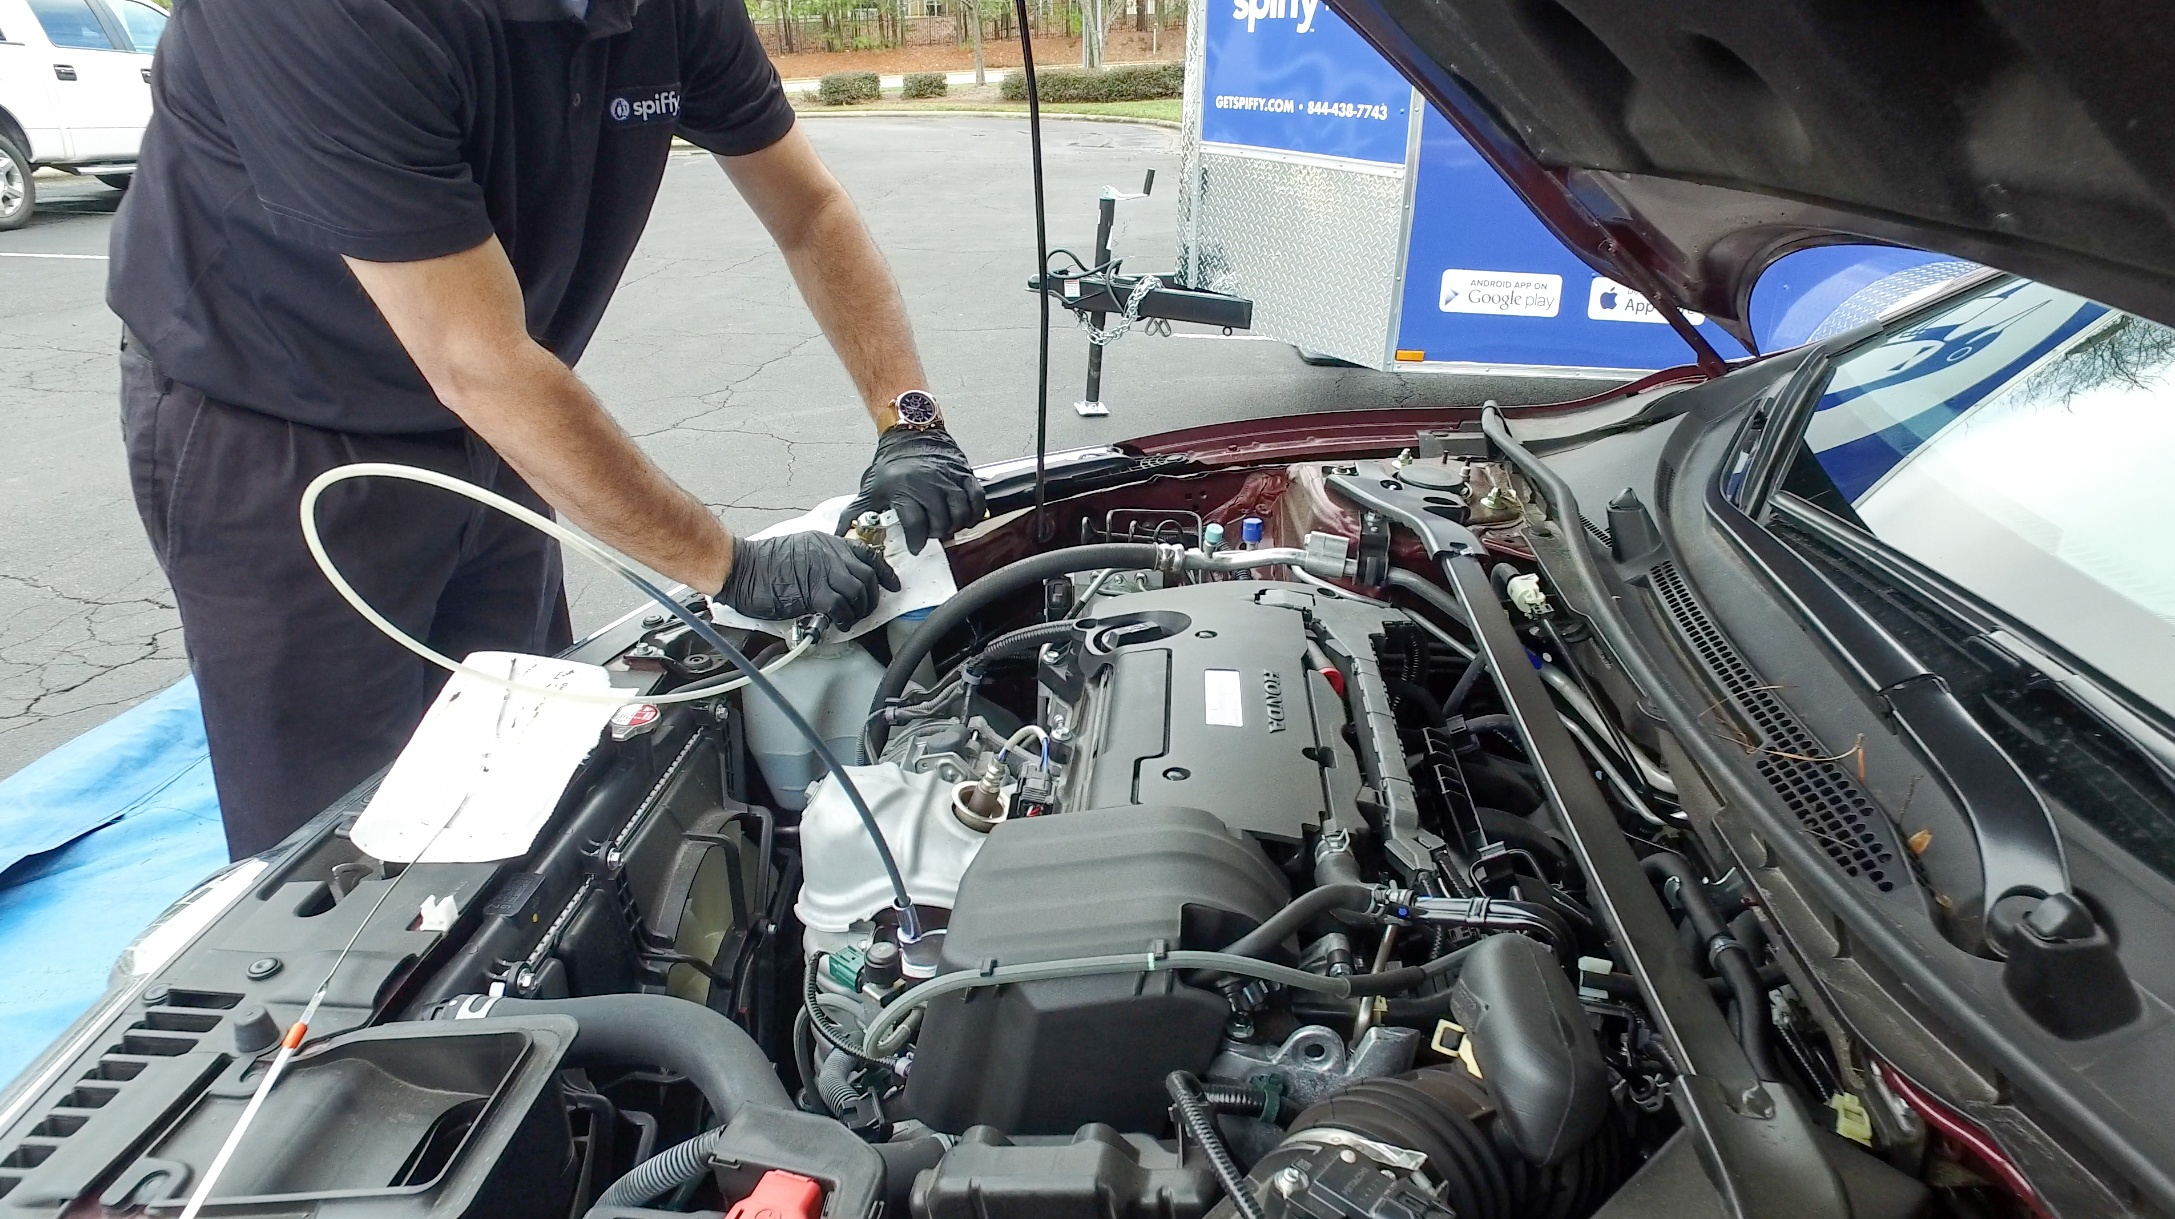 Mobile oil change by a Spiffy technician